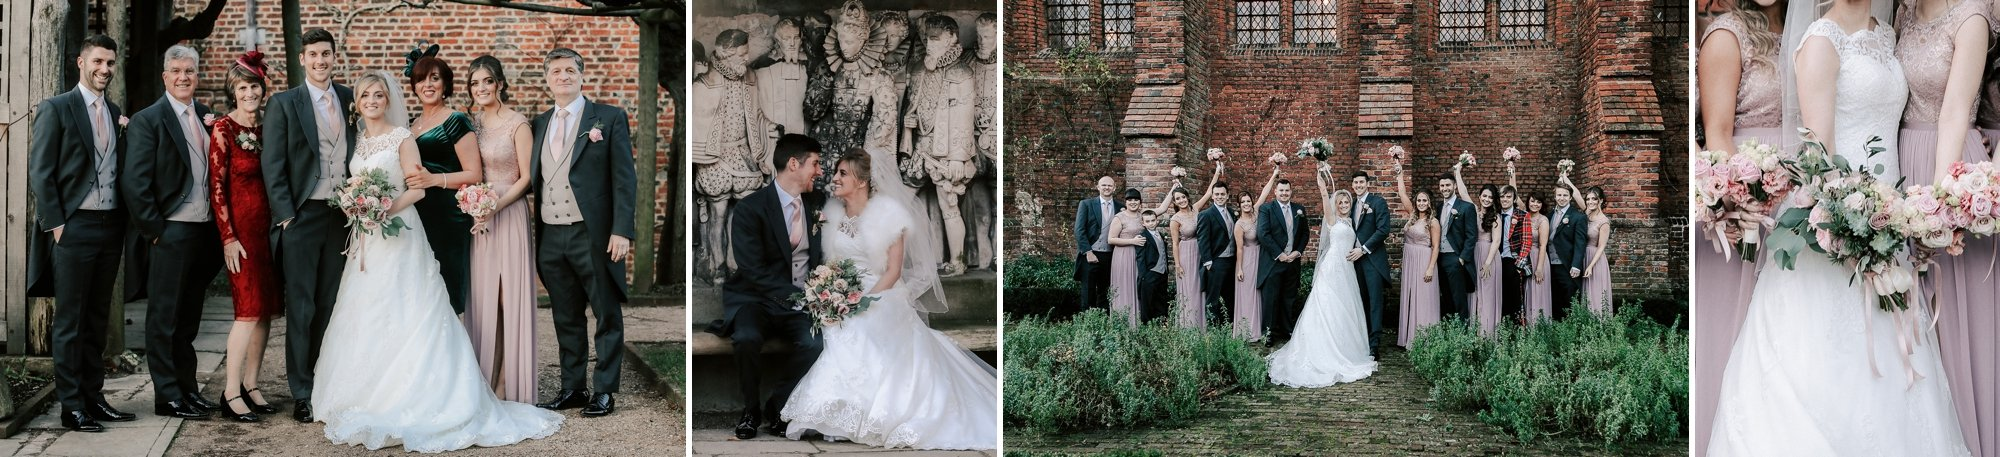 Hatfield House Winter Wedding